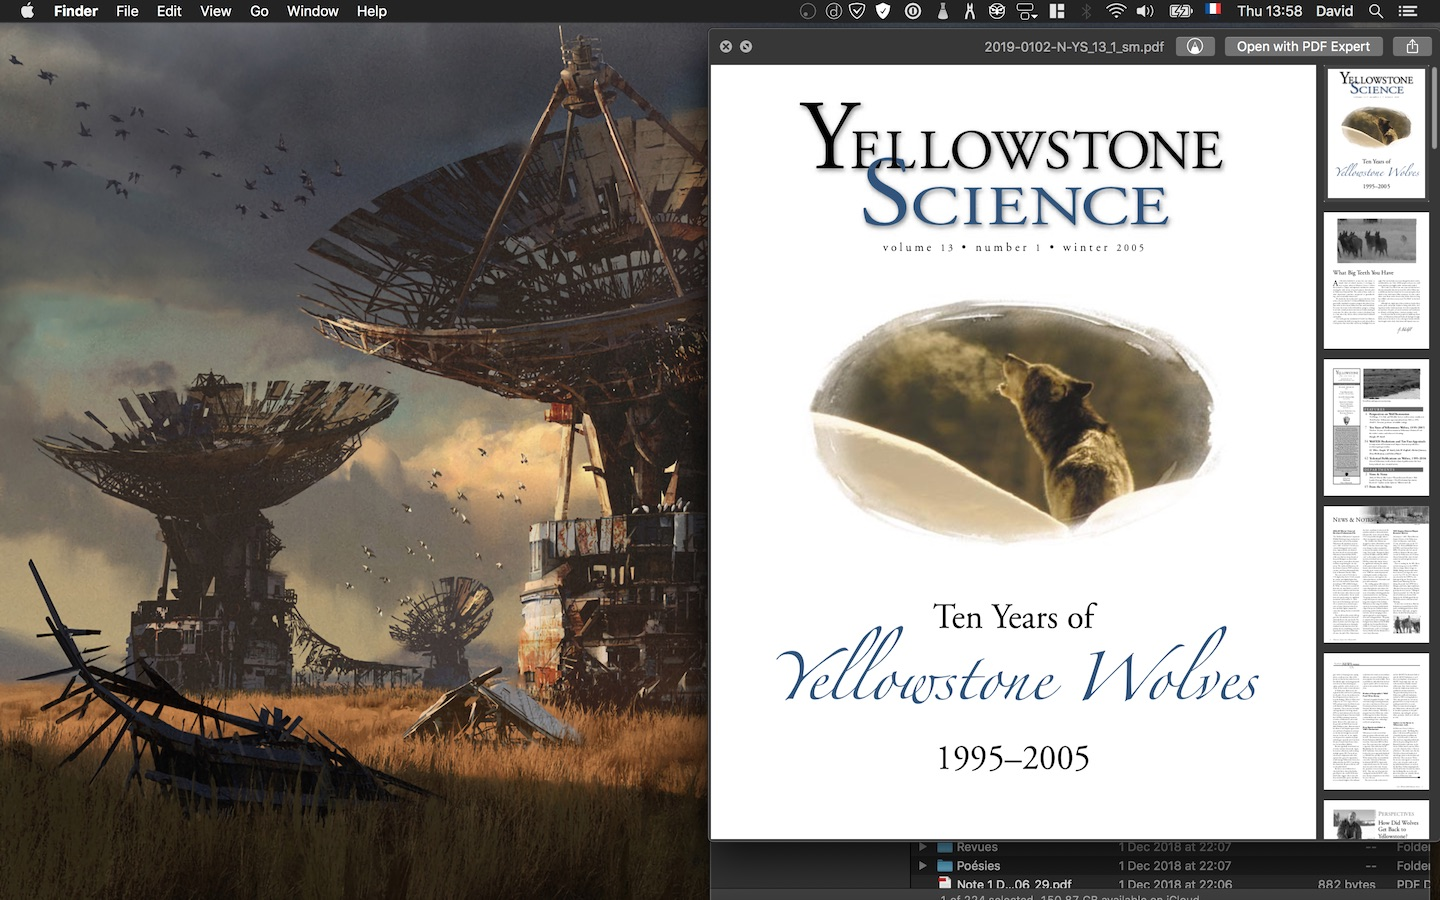 10 Years of Yellowstone Wolves, cover